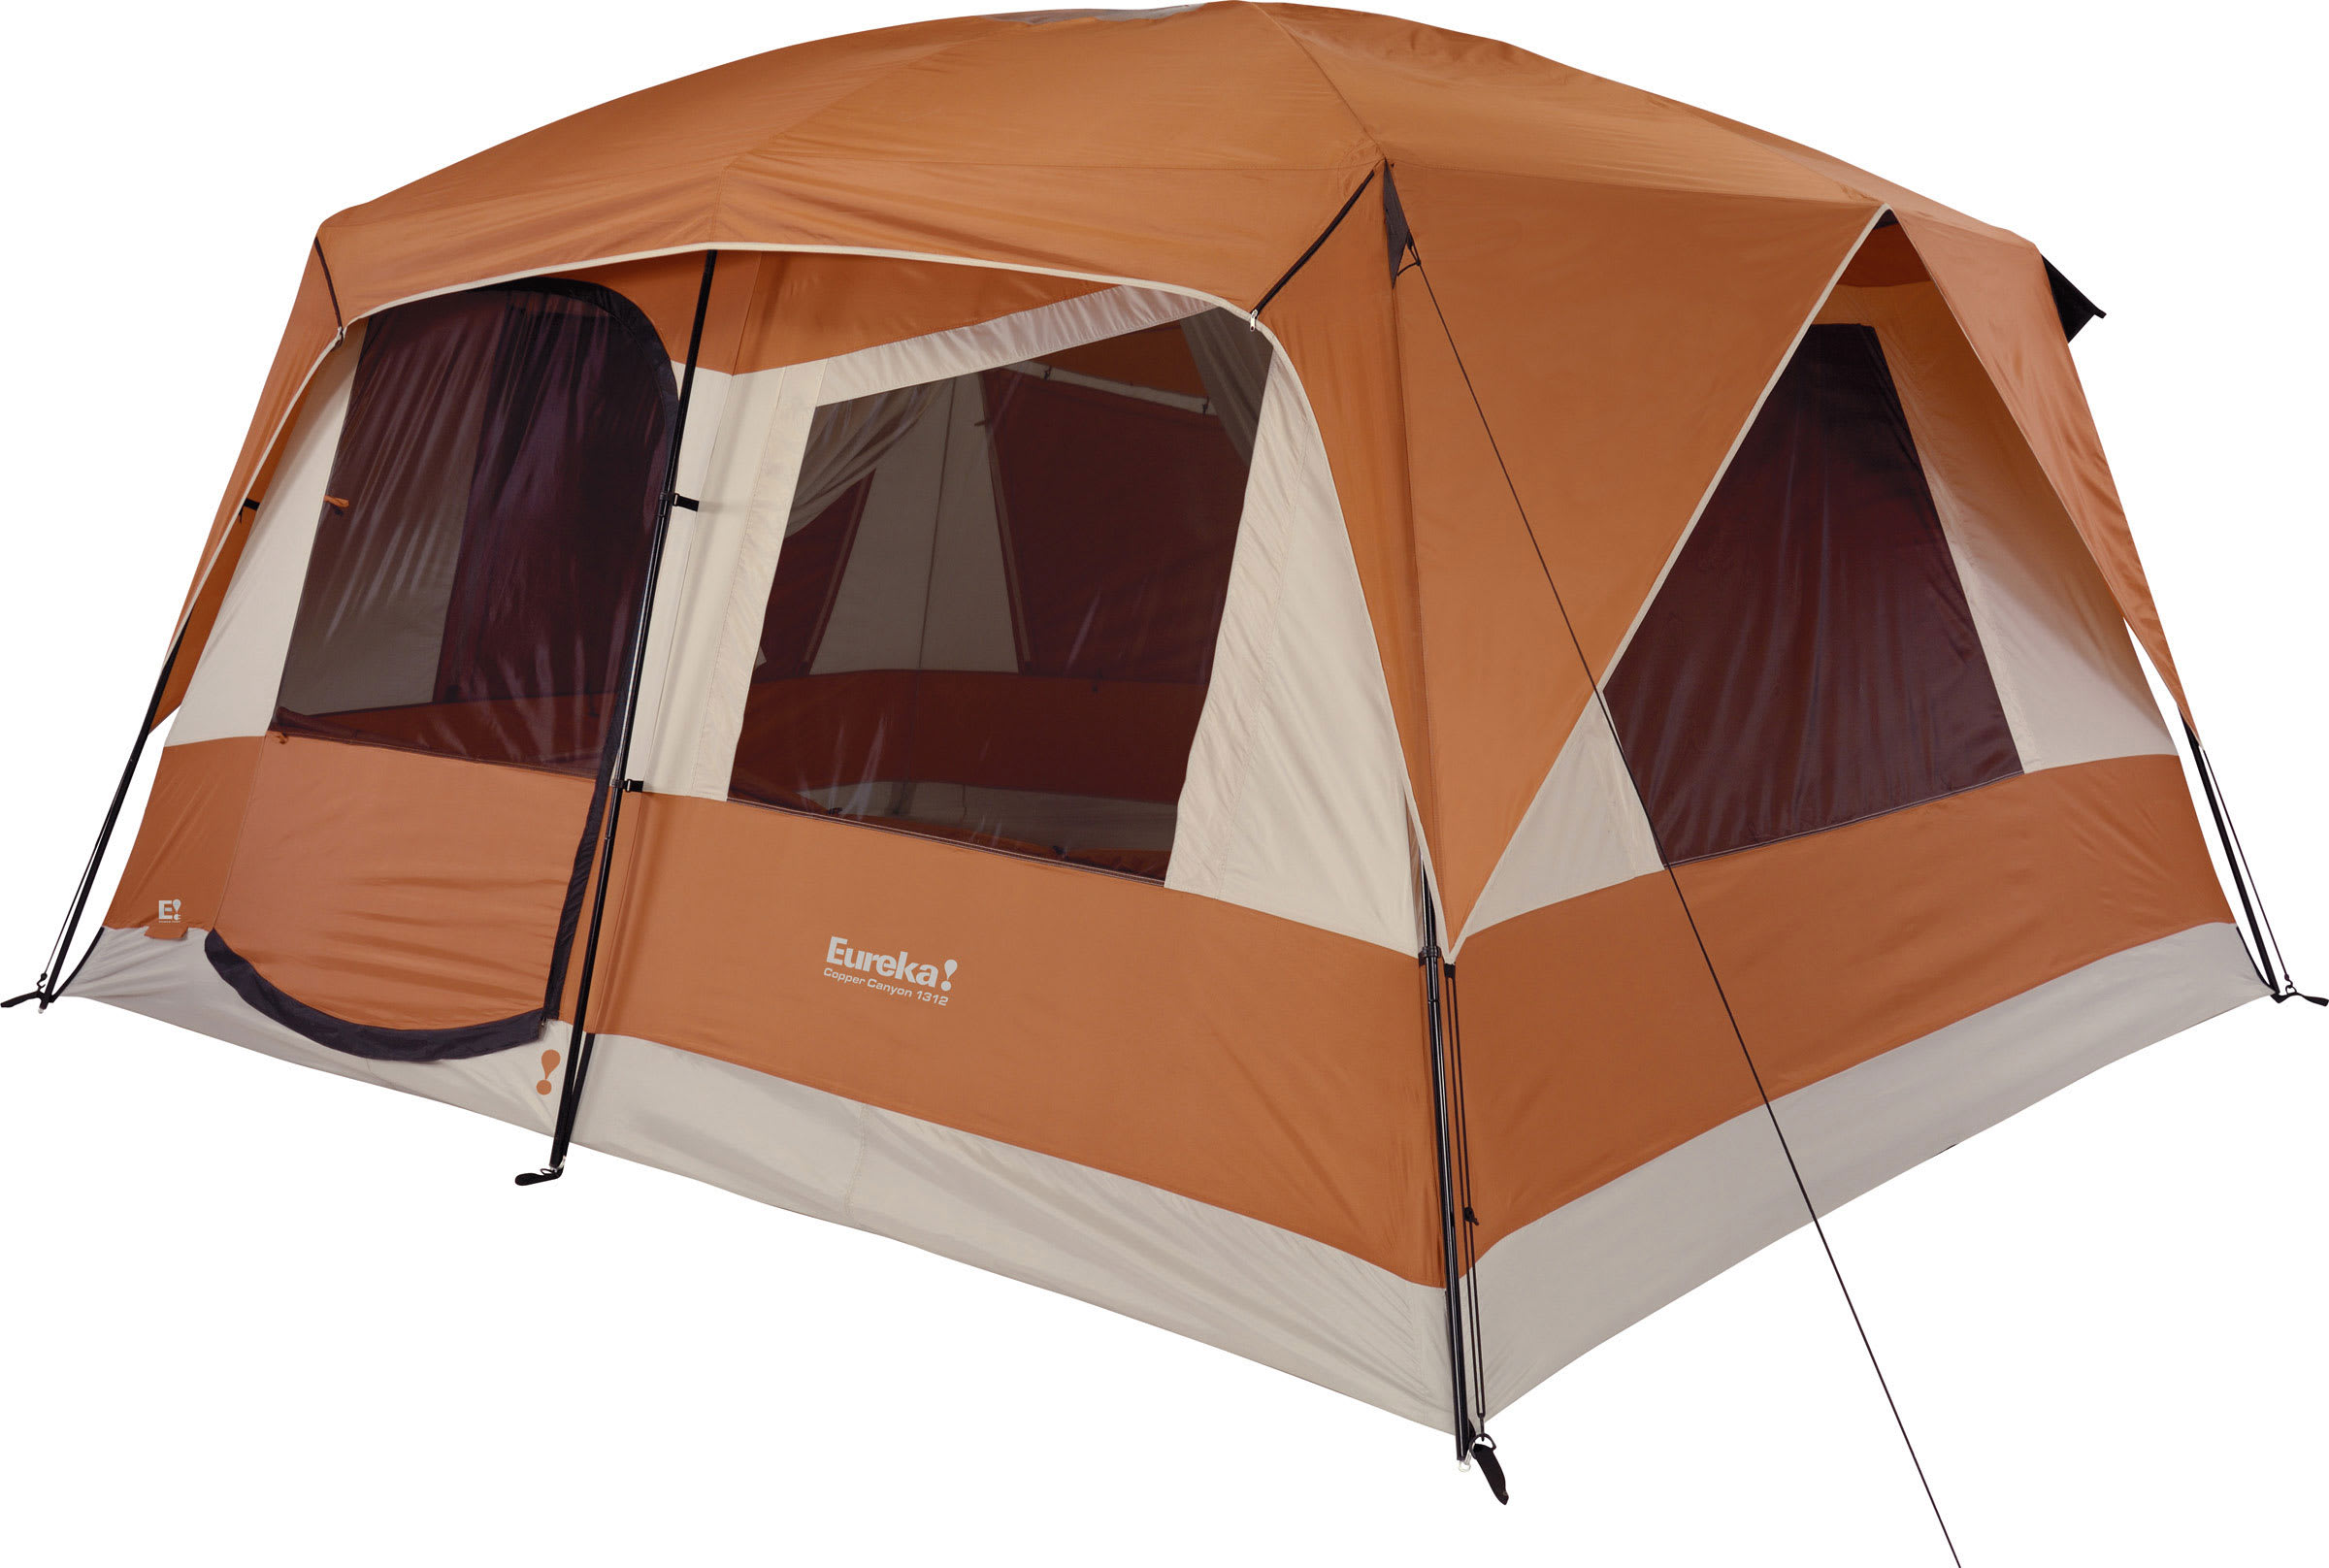 Eureka Copper Canyon 1312 2 Room Tent - thumbnail 1  sc 1 st  The House & On Sale Eureka Copper Canyon 1312 2 Room Tent up to 70% off